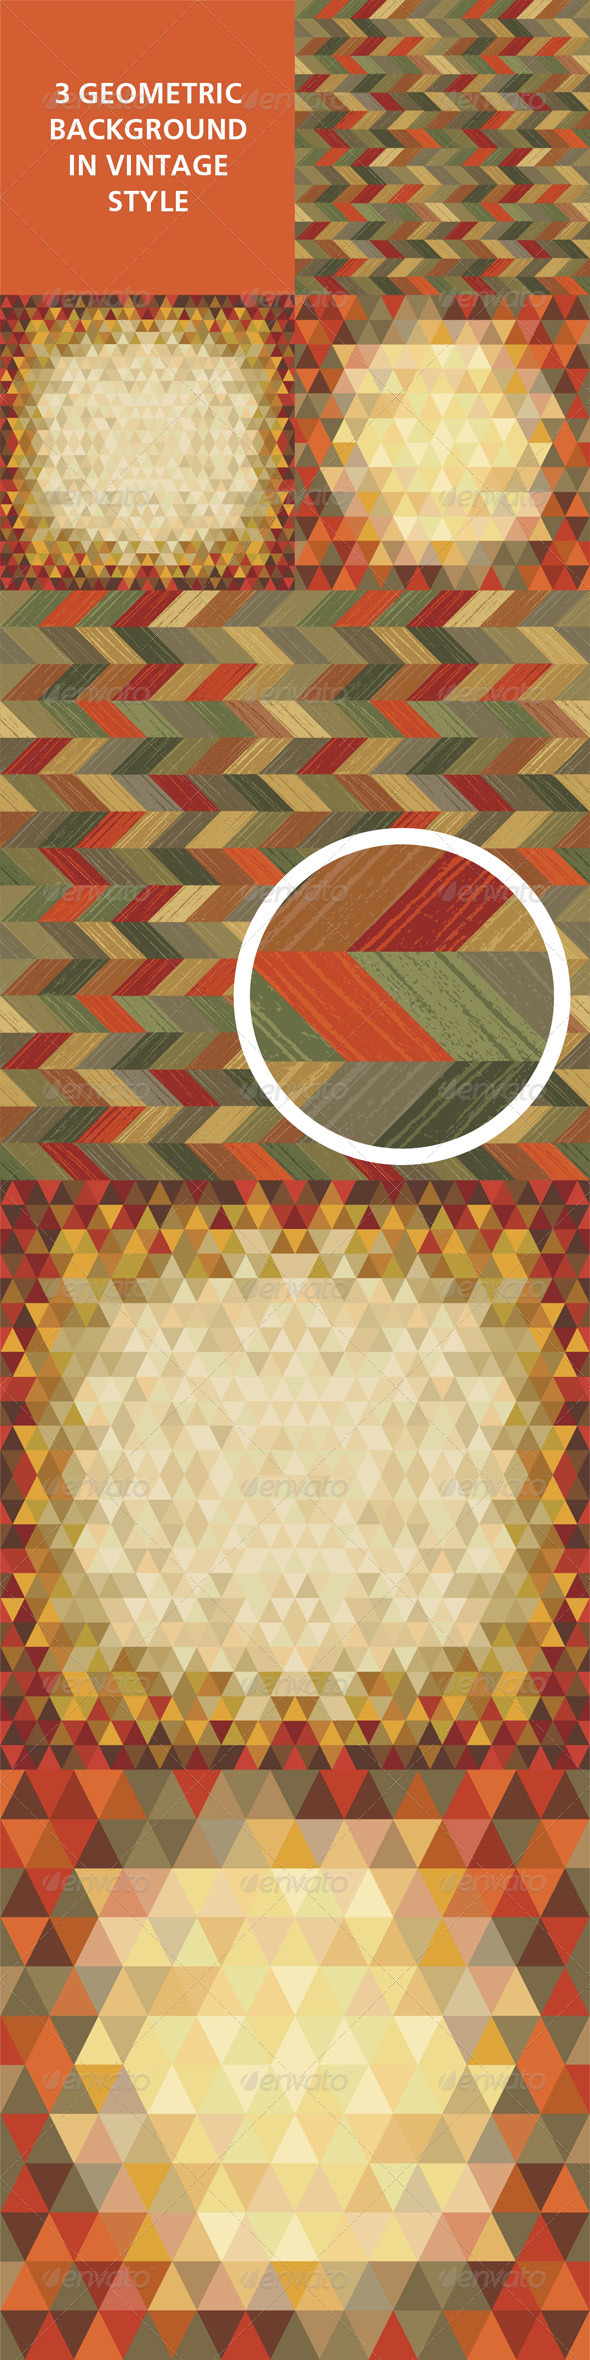 Geometric Background Vector 01 - Backgrounds Decorative